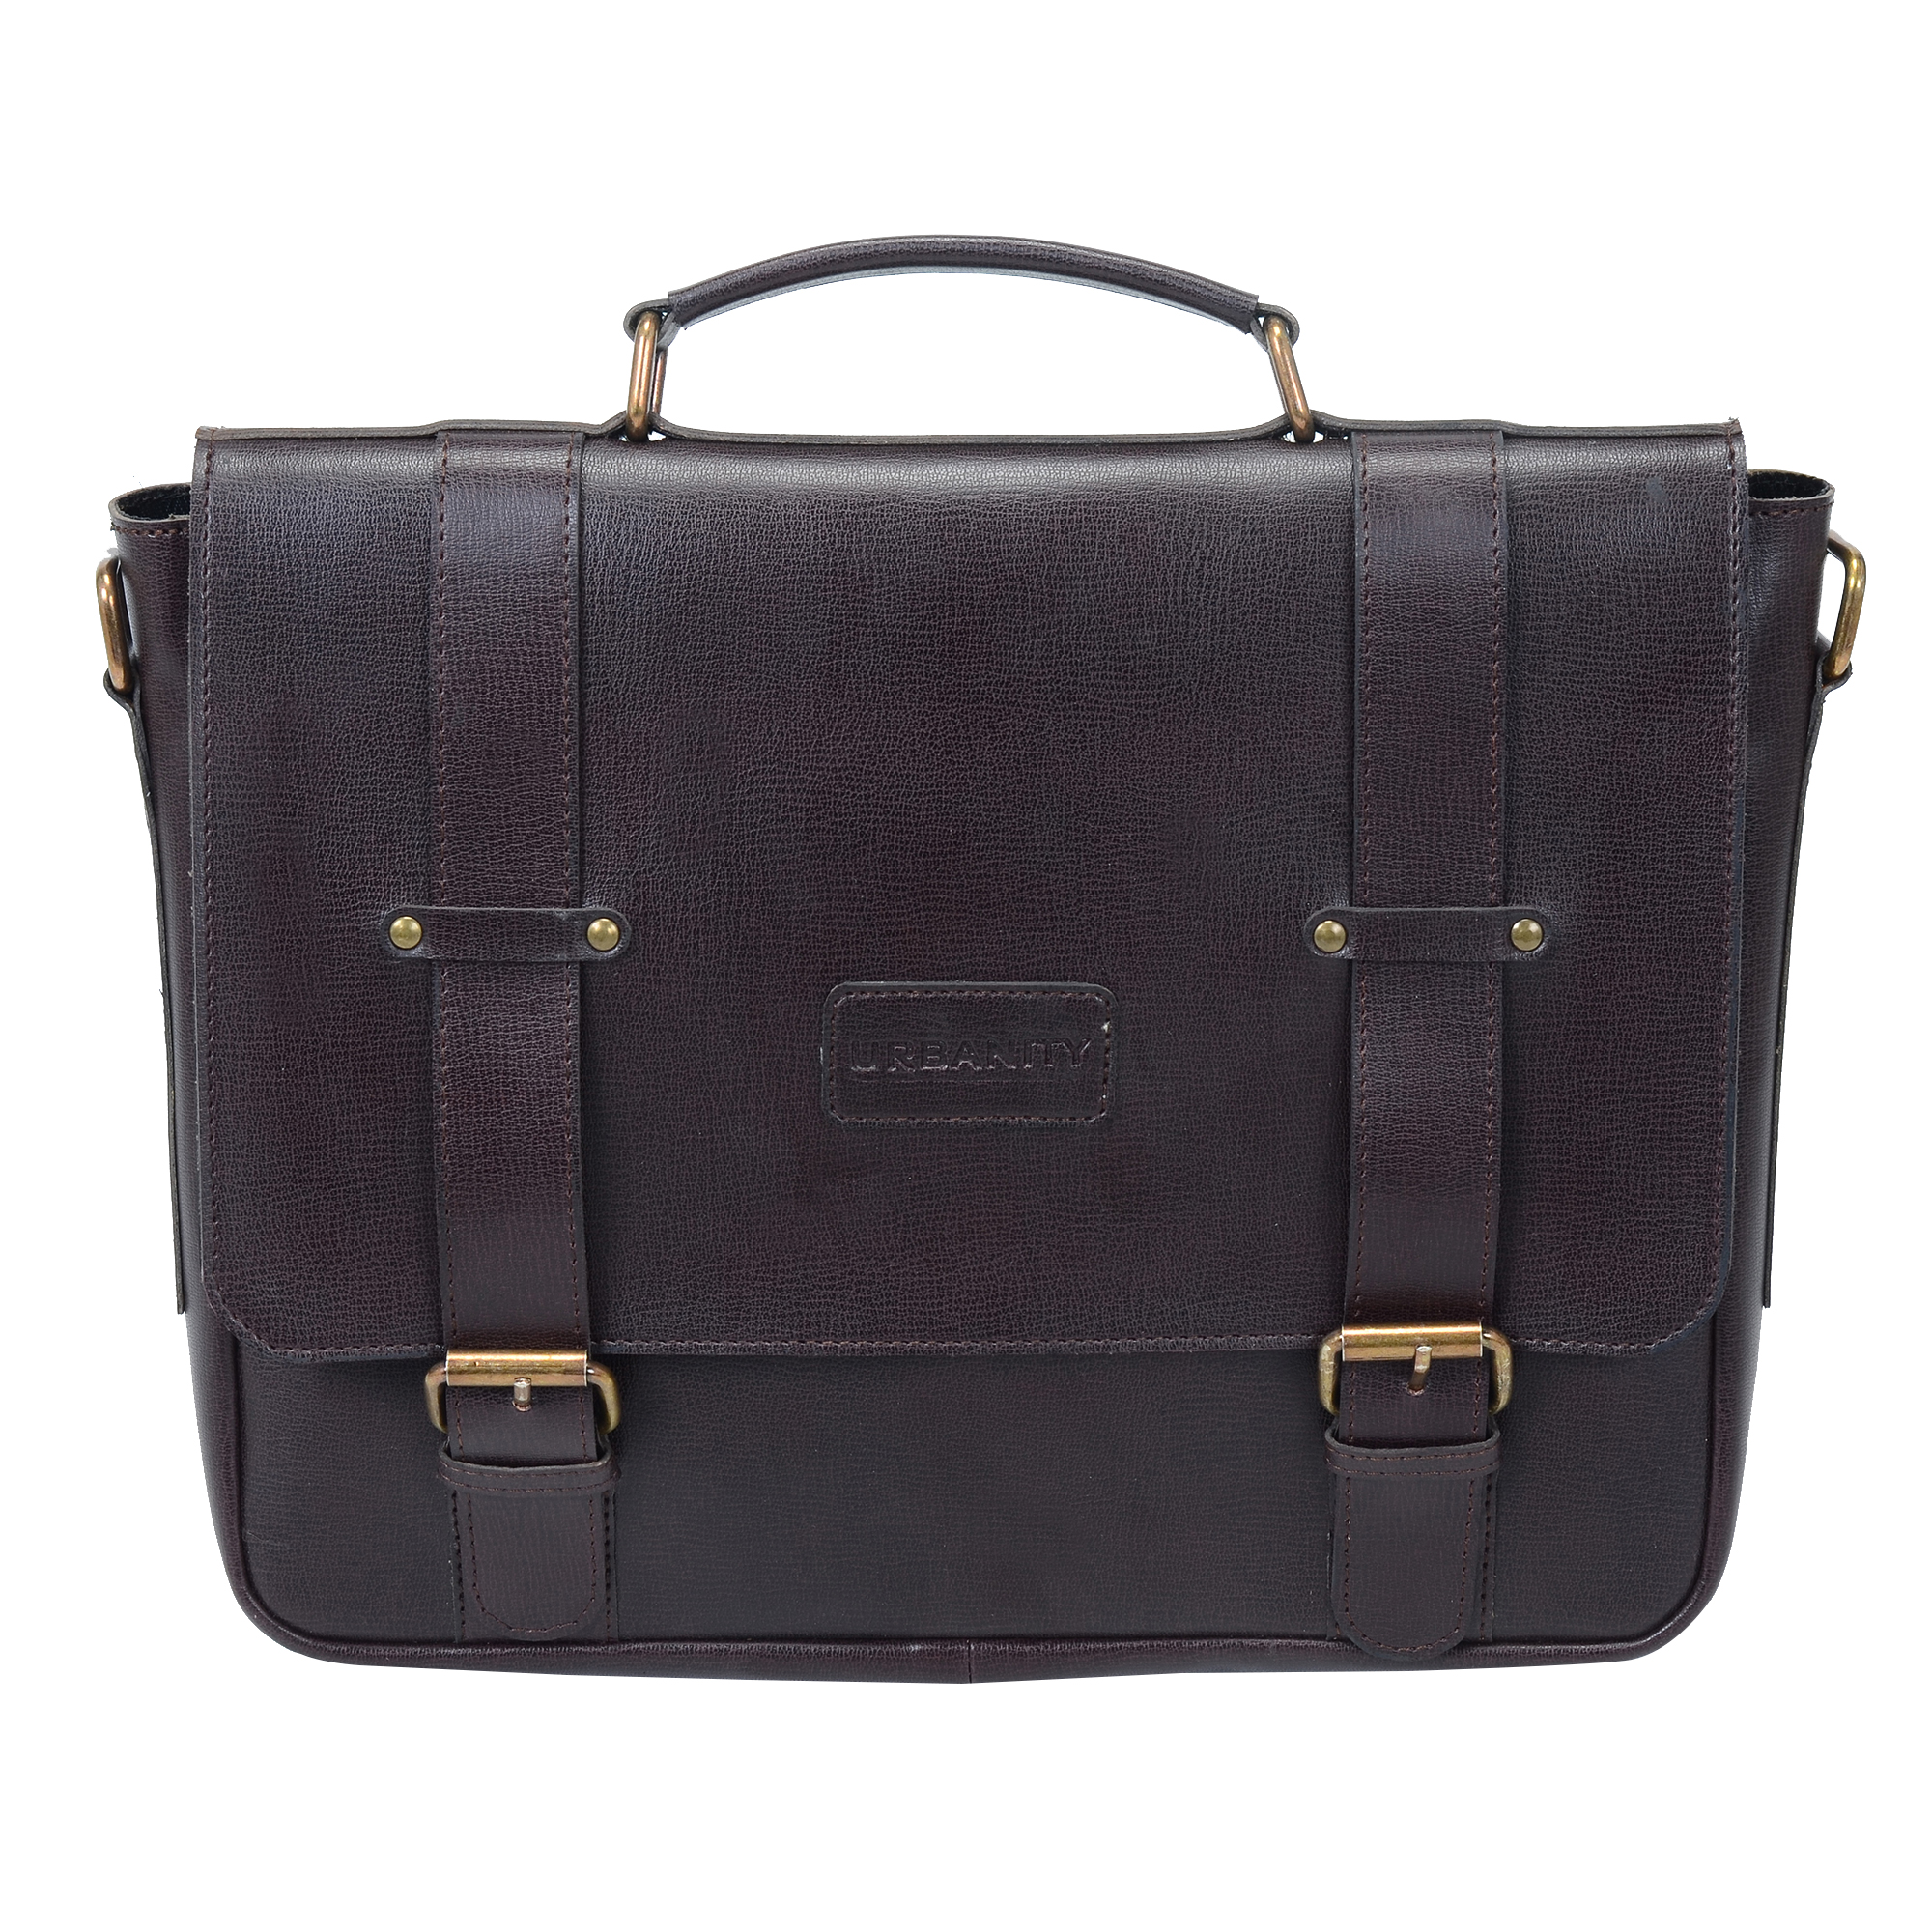 URBANITY Leather Men 15 Inch Laptop Messenger Bag  Brown